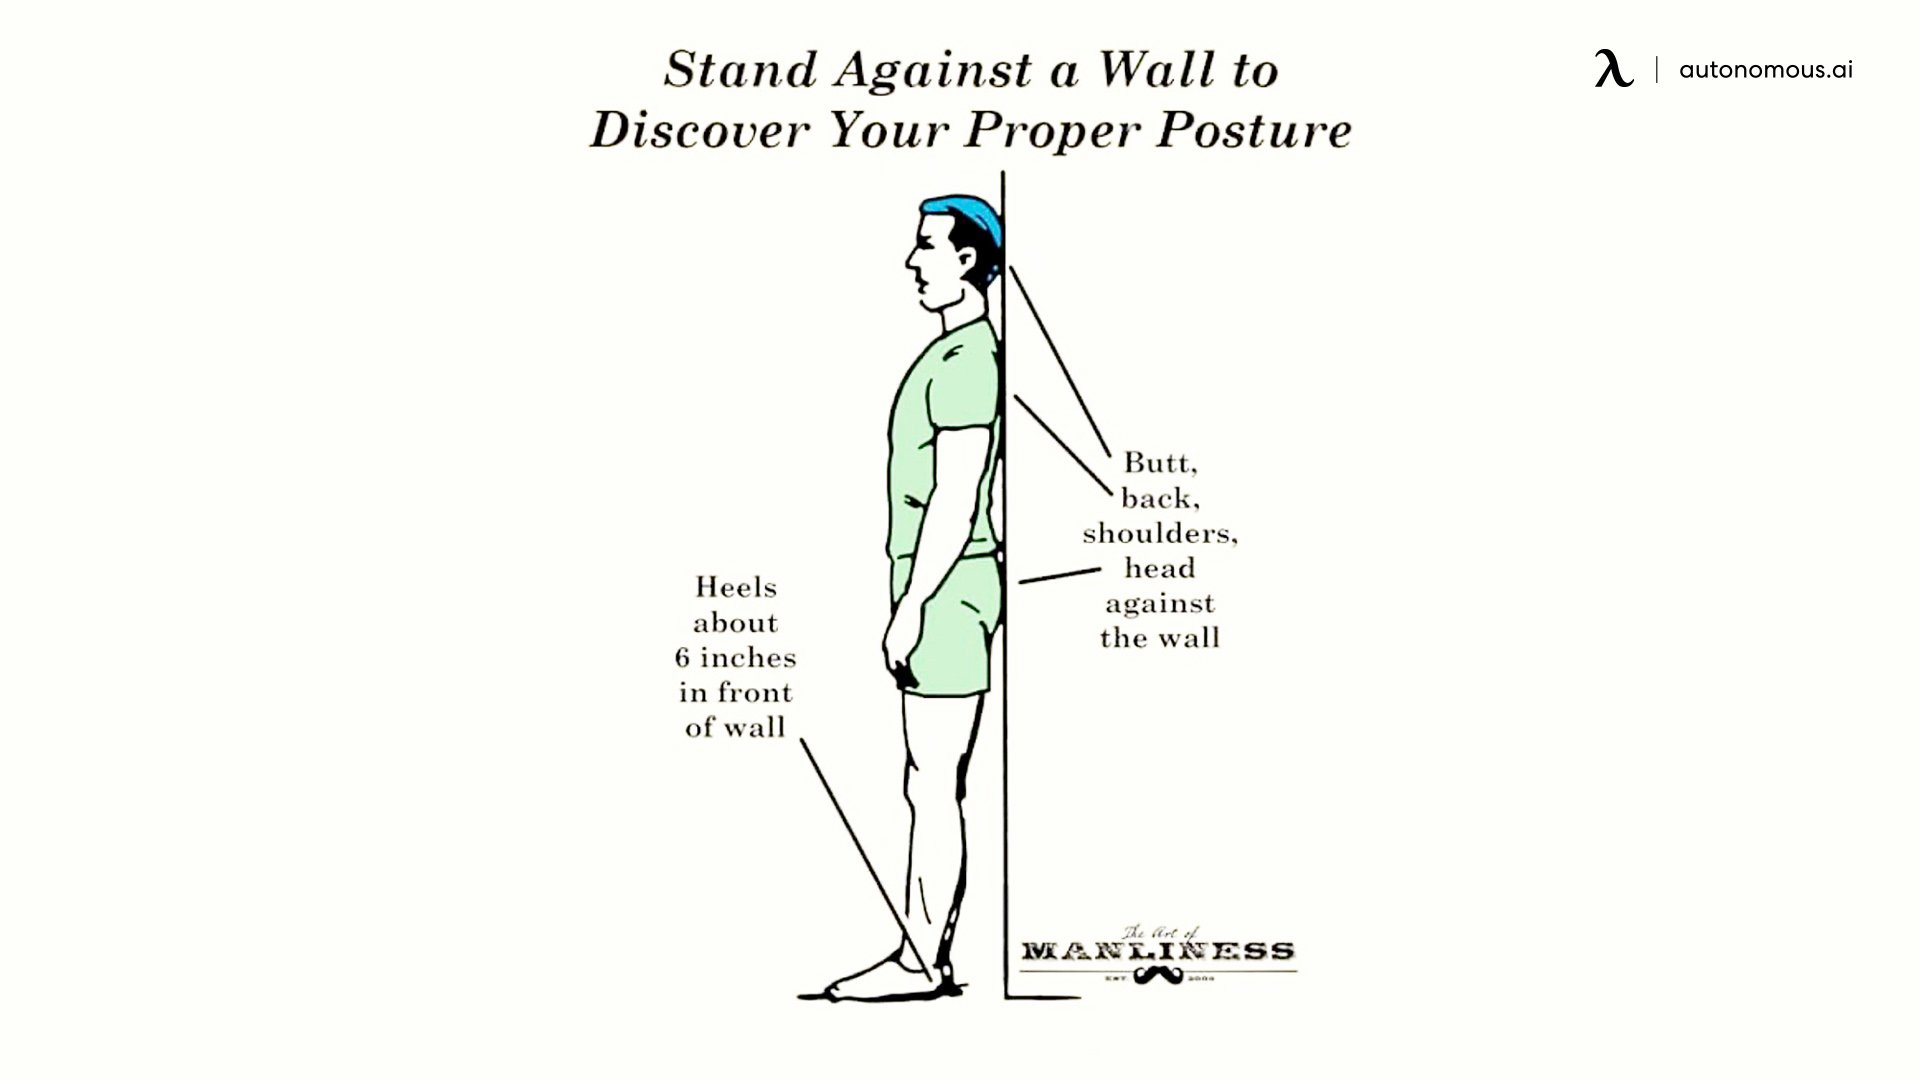 How To Test Your Posture in 30 Seconds